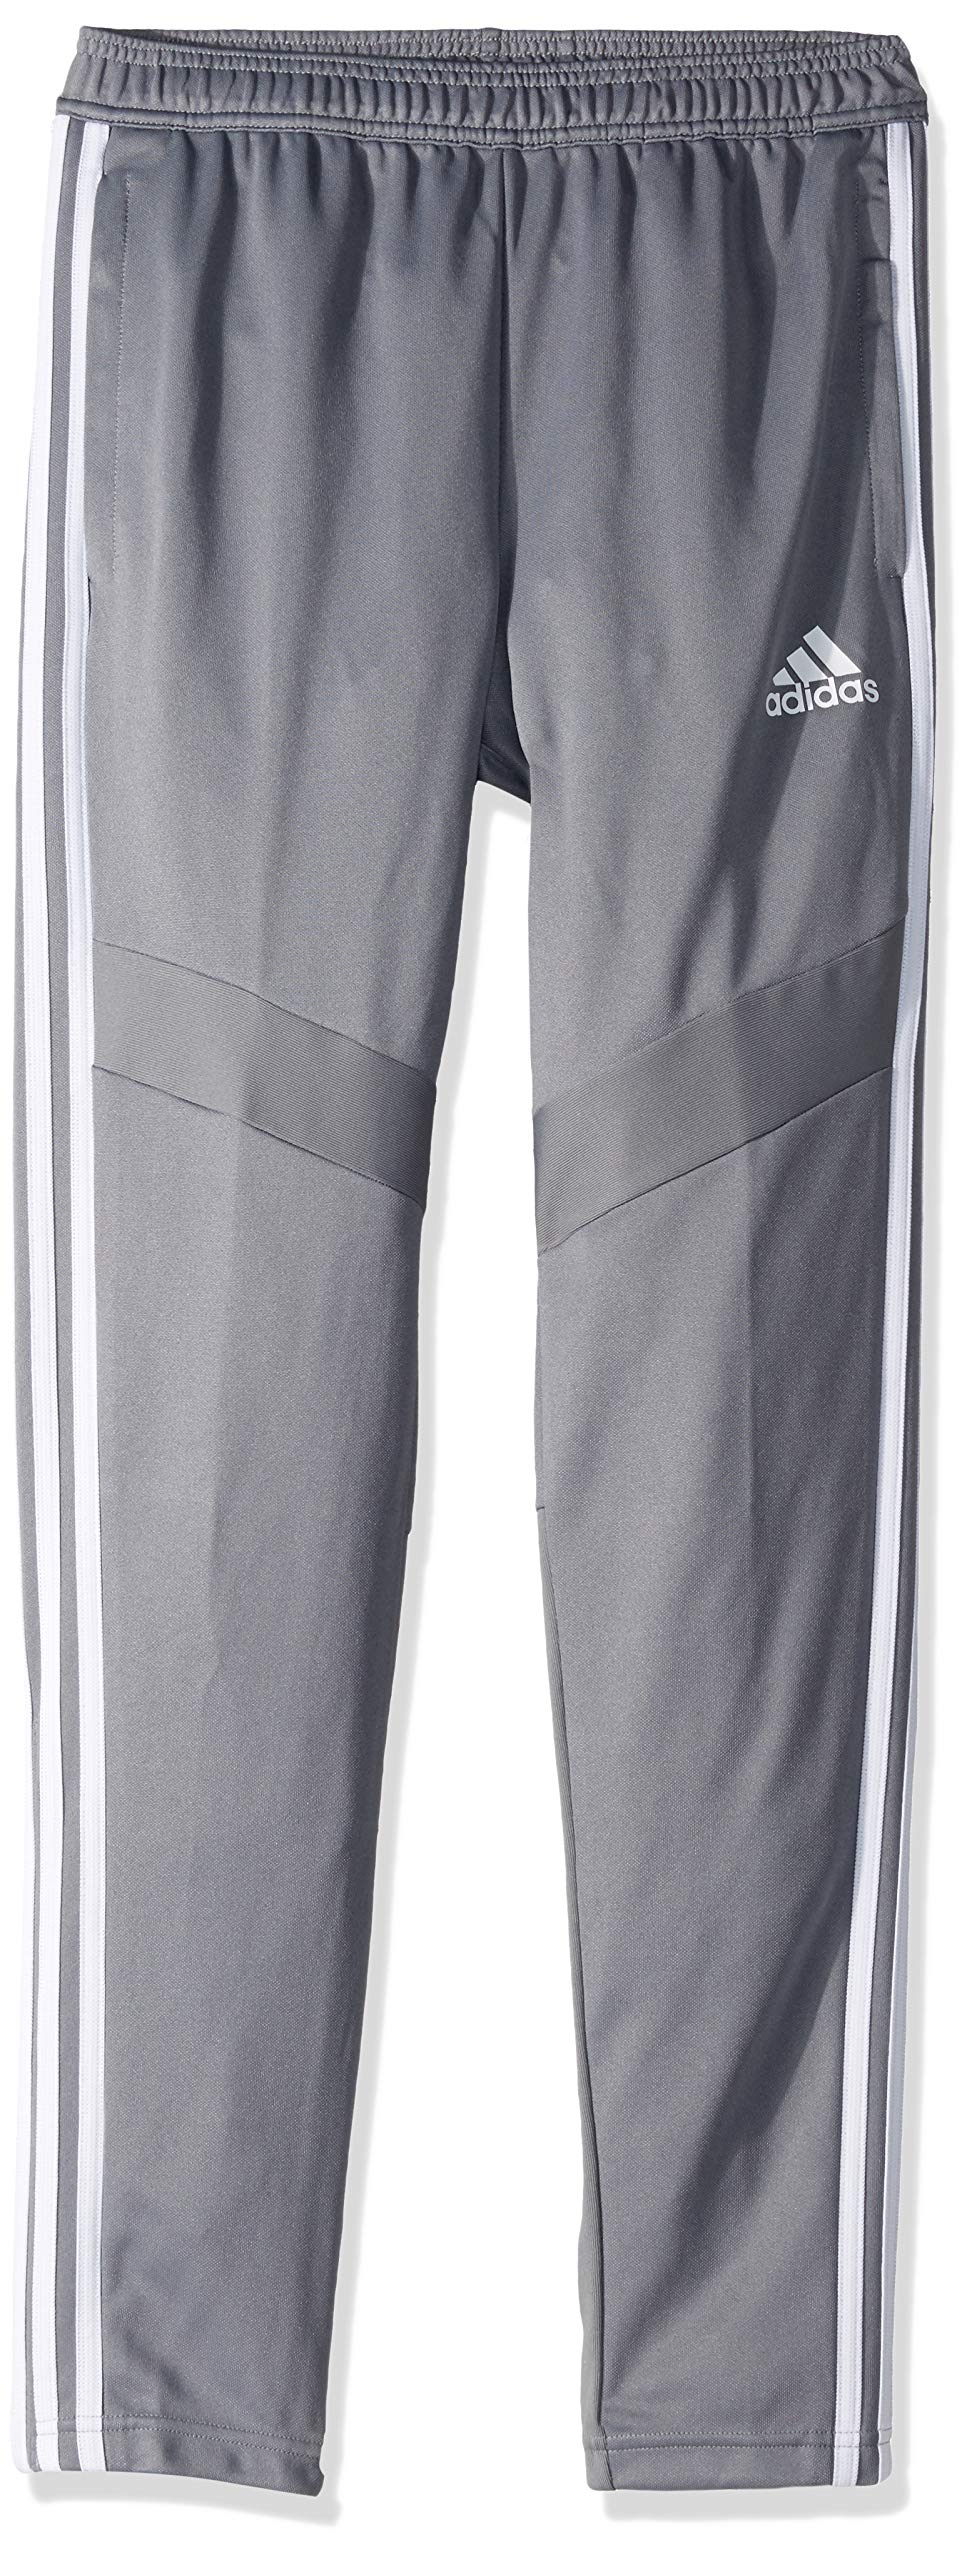 adidas Youth Tiro19 Youth Training Pants, Grey/White, Small